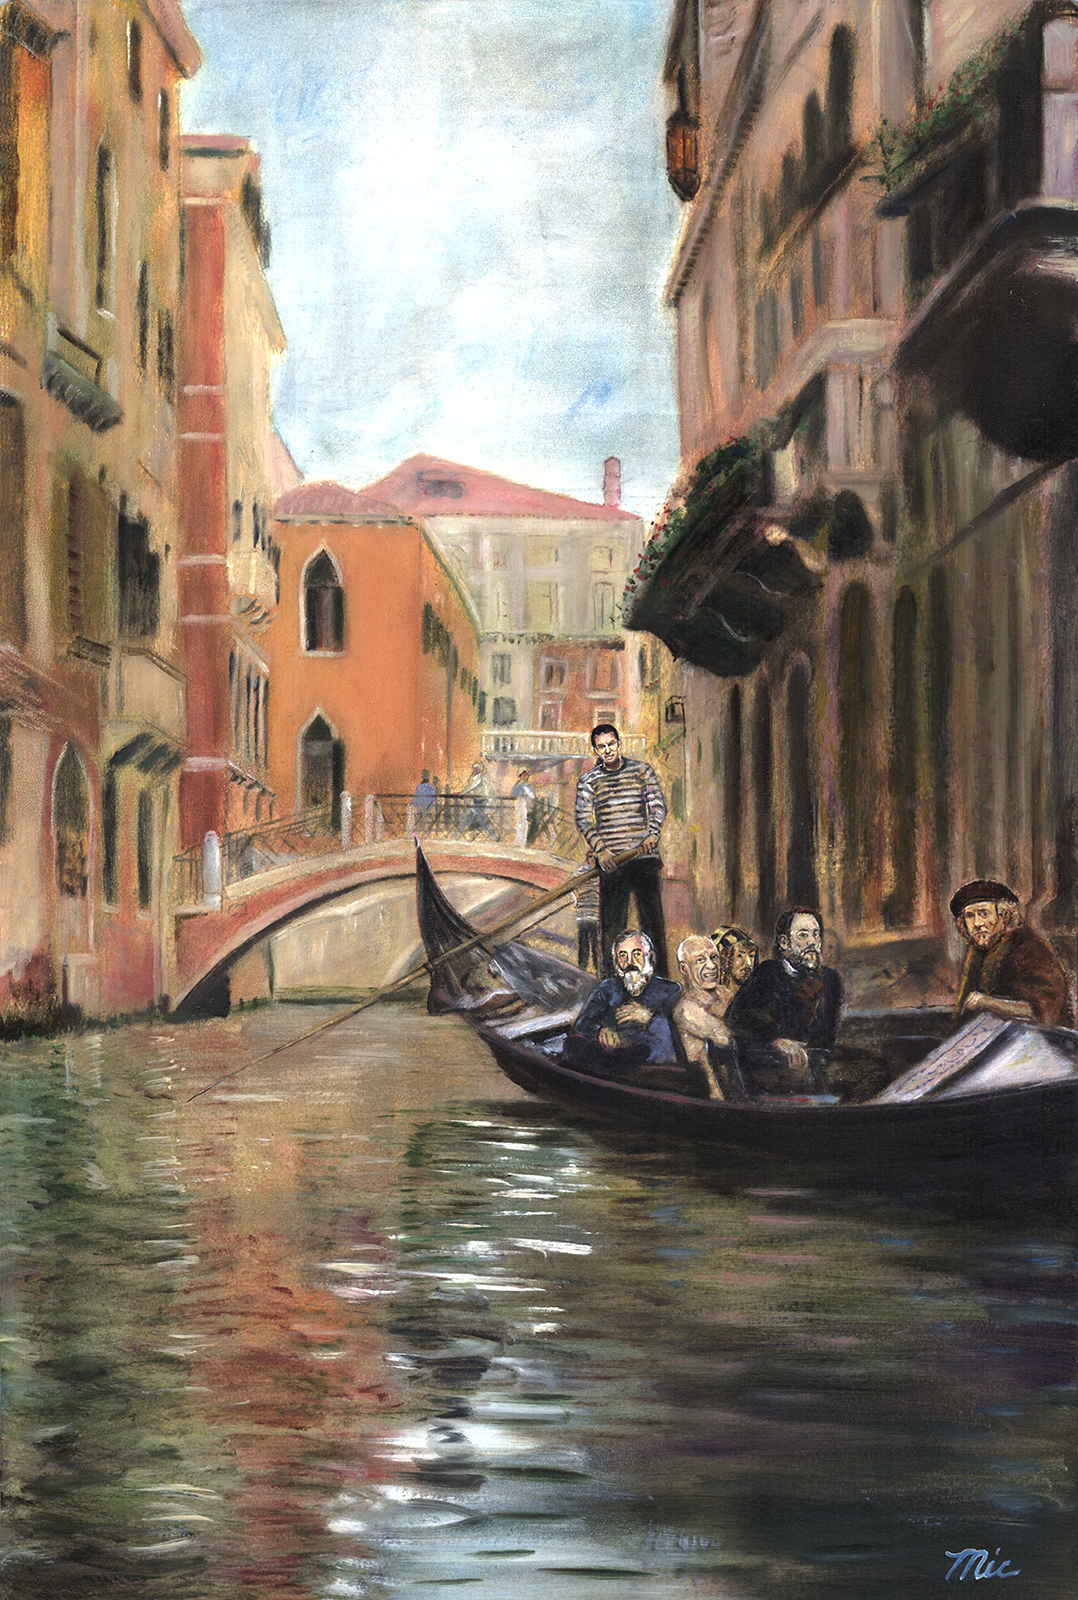 """""""Touring Masters"""" Venice, Italy - Monet, Picasso, Durer, Rubens, Rembrandt (Gondolier Micasso)Oil on Italian panel, Private Collection Jim Boylan.Giclee Limited Edition and canvas prints are available. Please visit the prints gallery."""